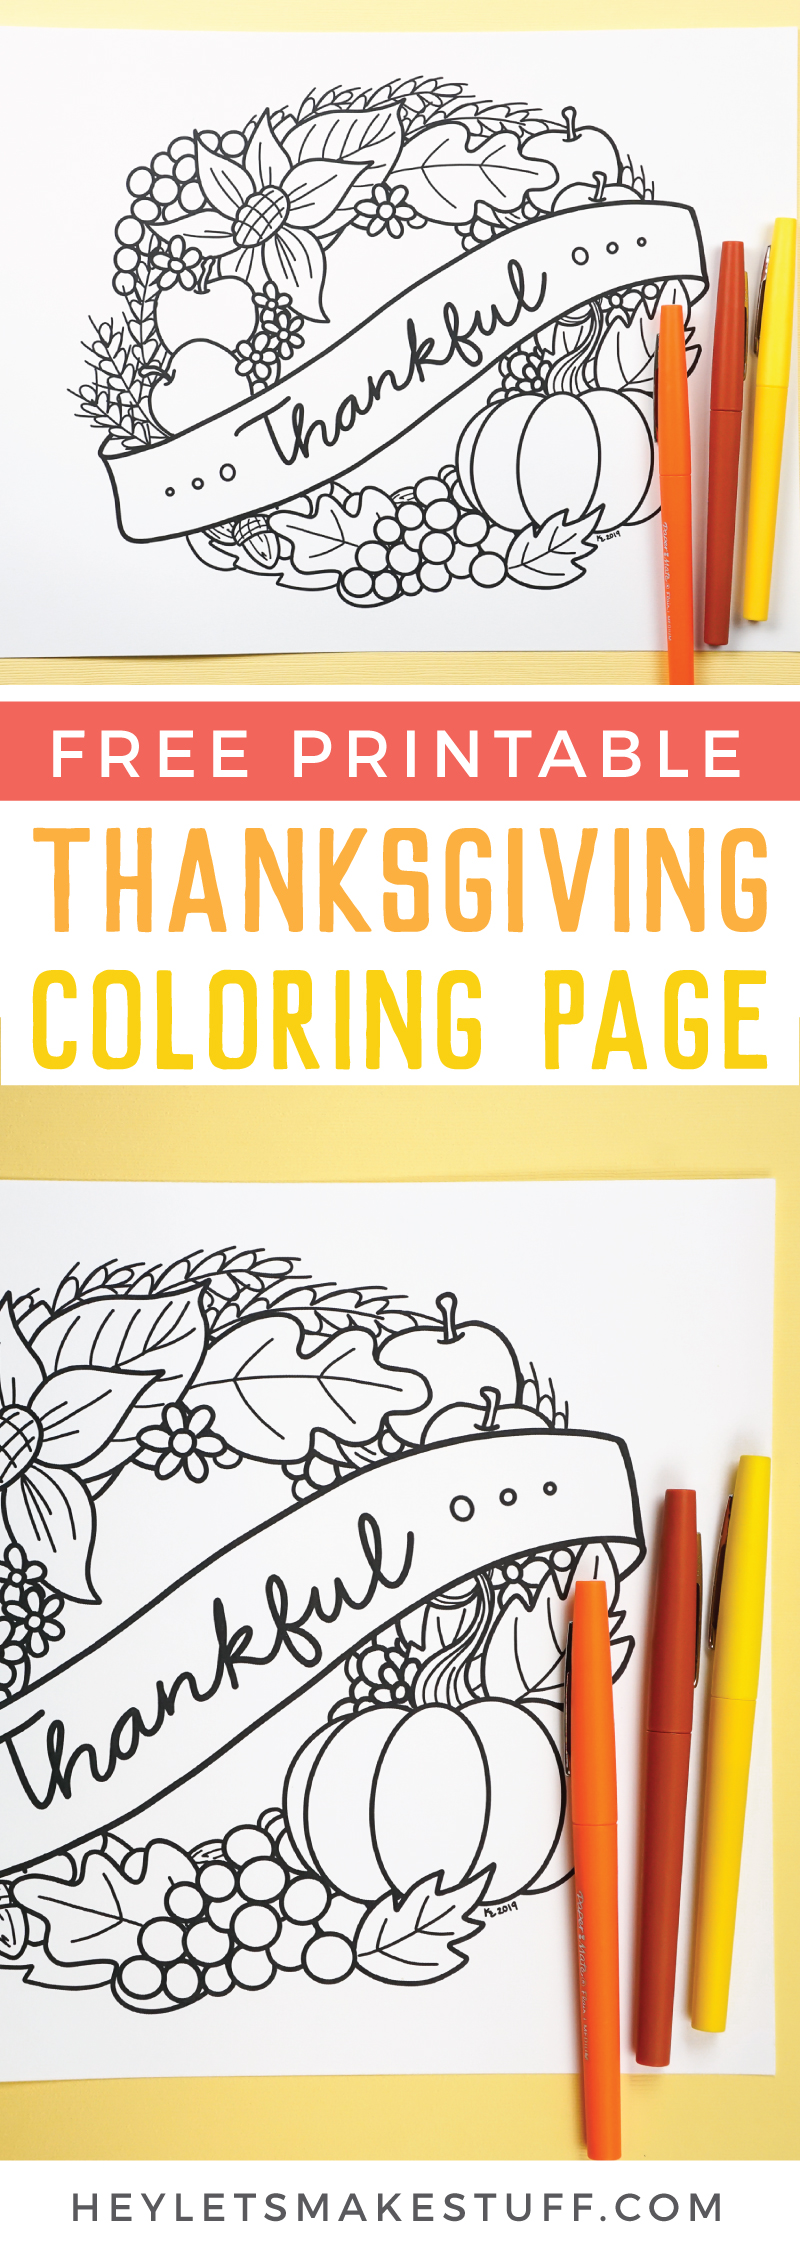 Gobble Gobble! It's turkey season and the food isn't the only fun. Bring Free Printable Thanksgiving Coloring Page to life while you wait for the turkey to finish cooking. via @heyletsmakestuf